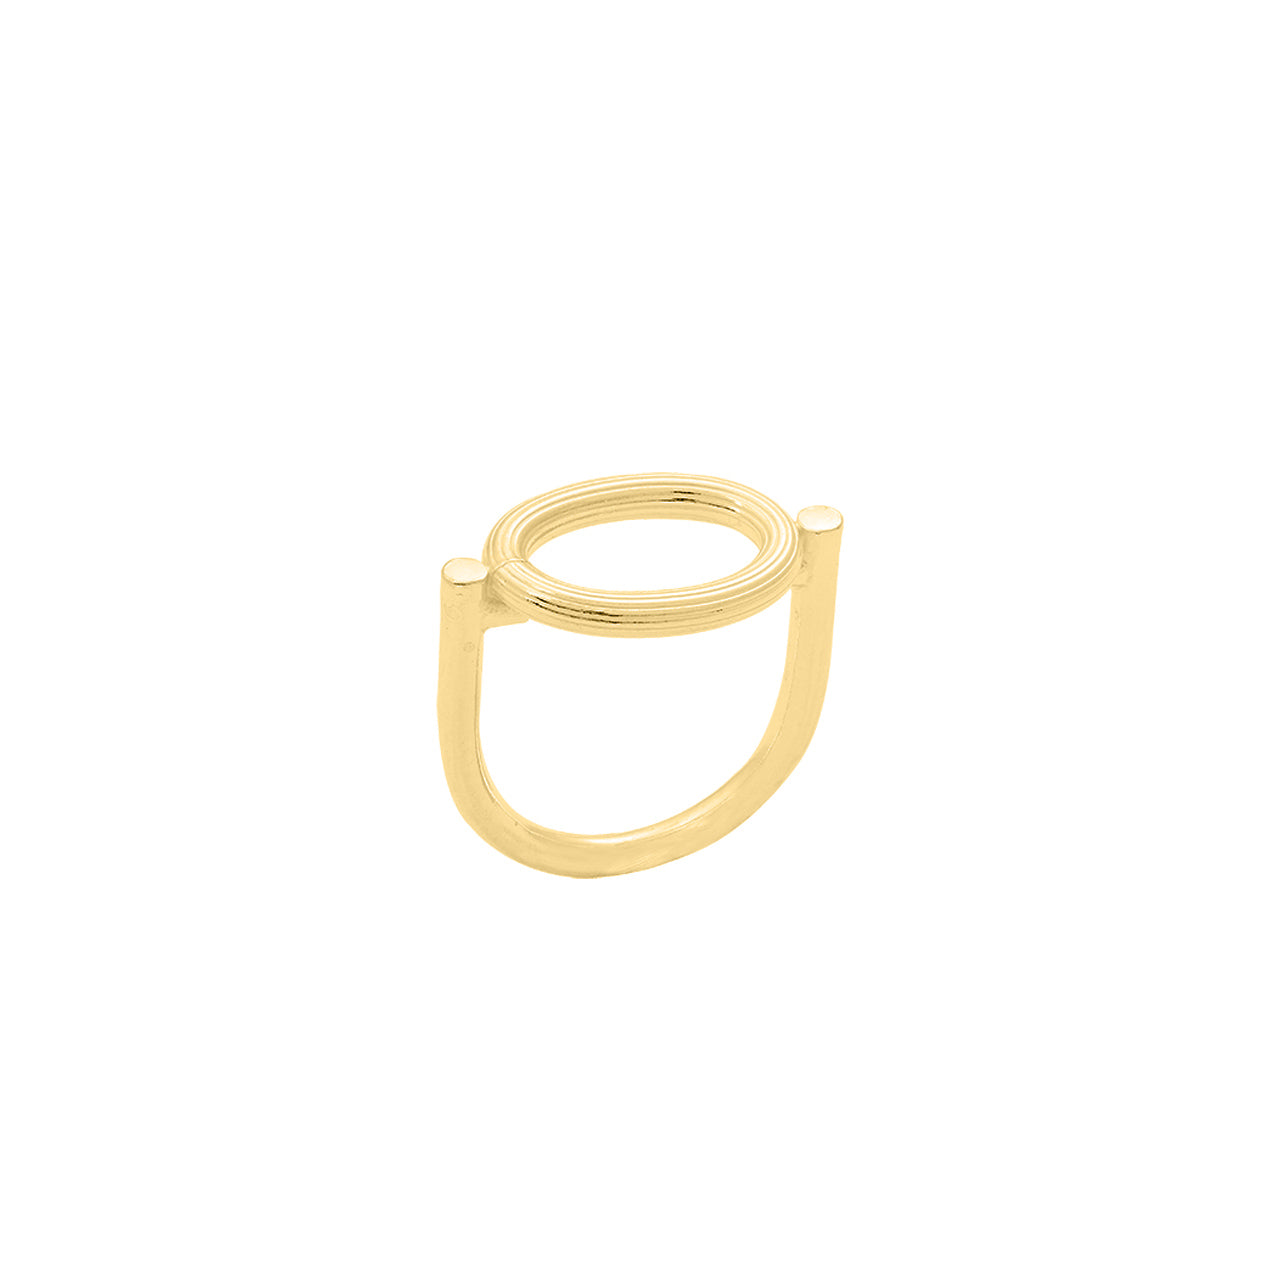 gold u-shaped engraved oval element ring